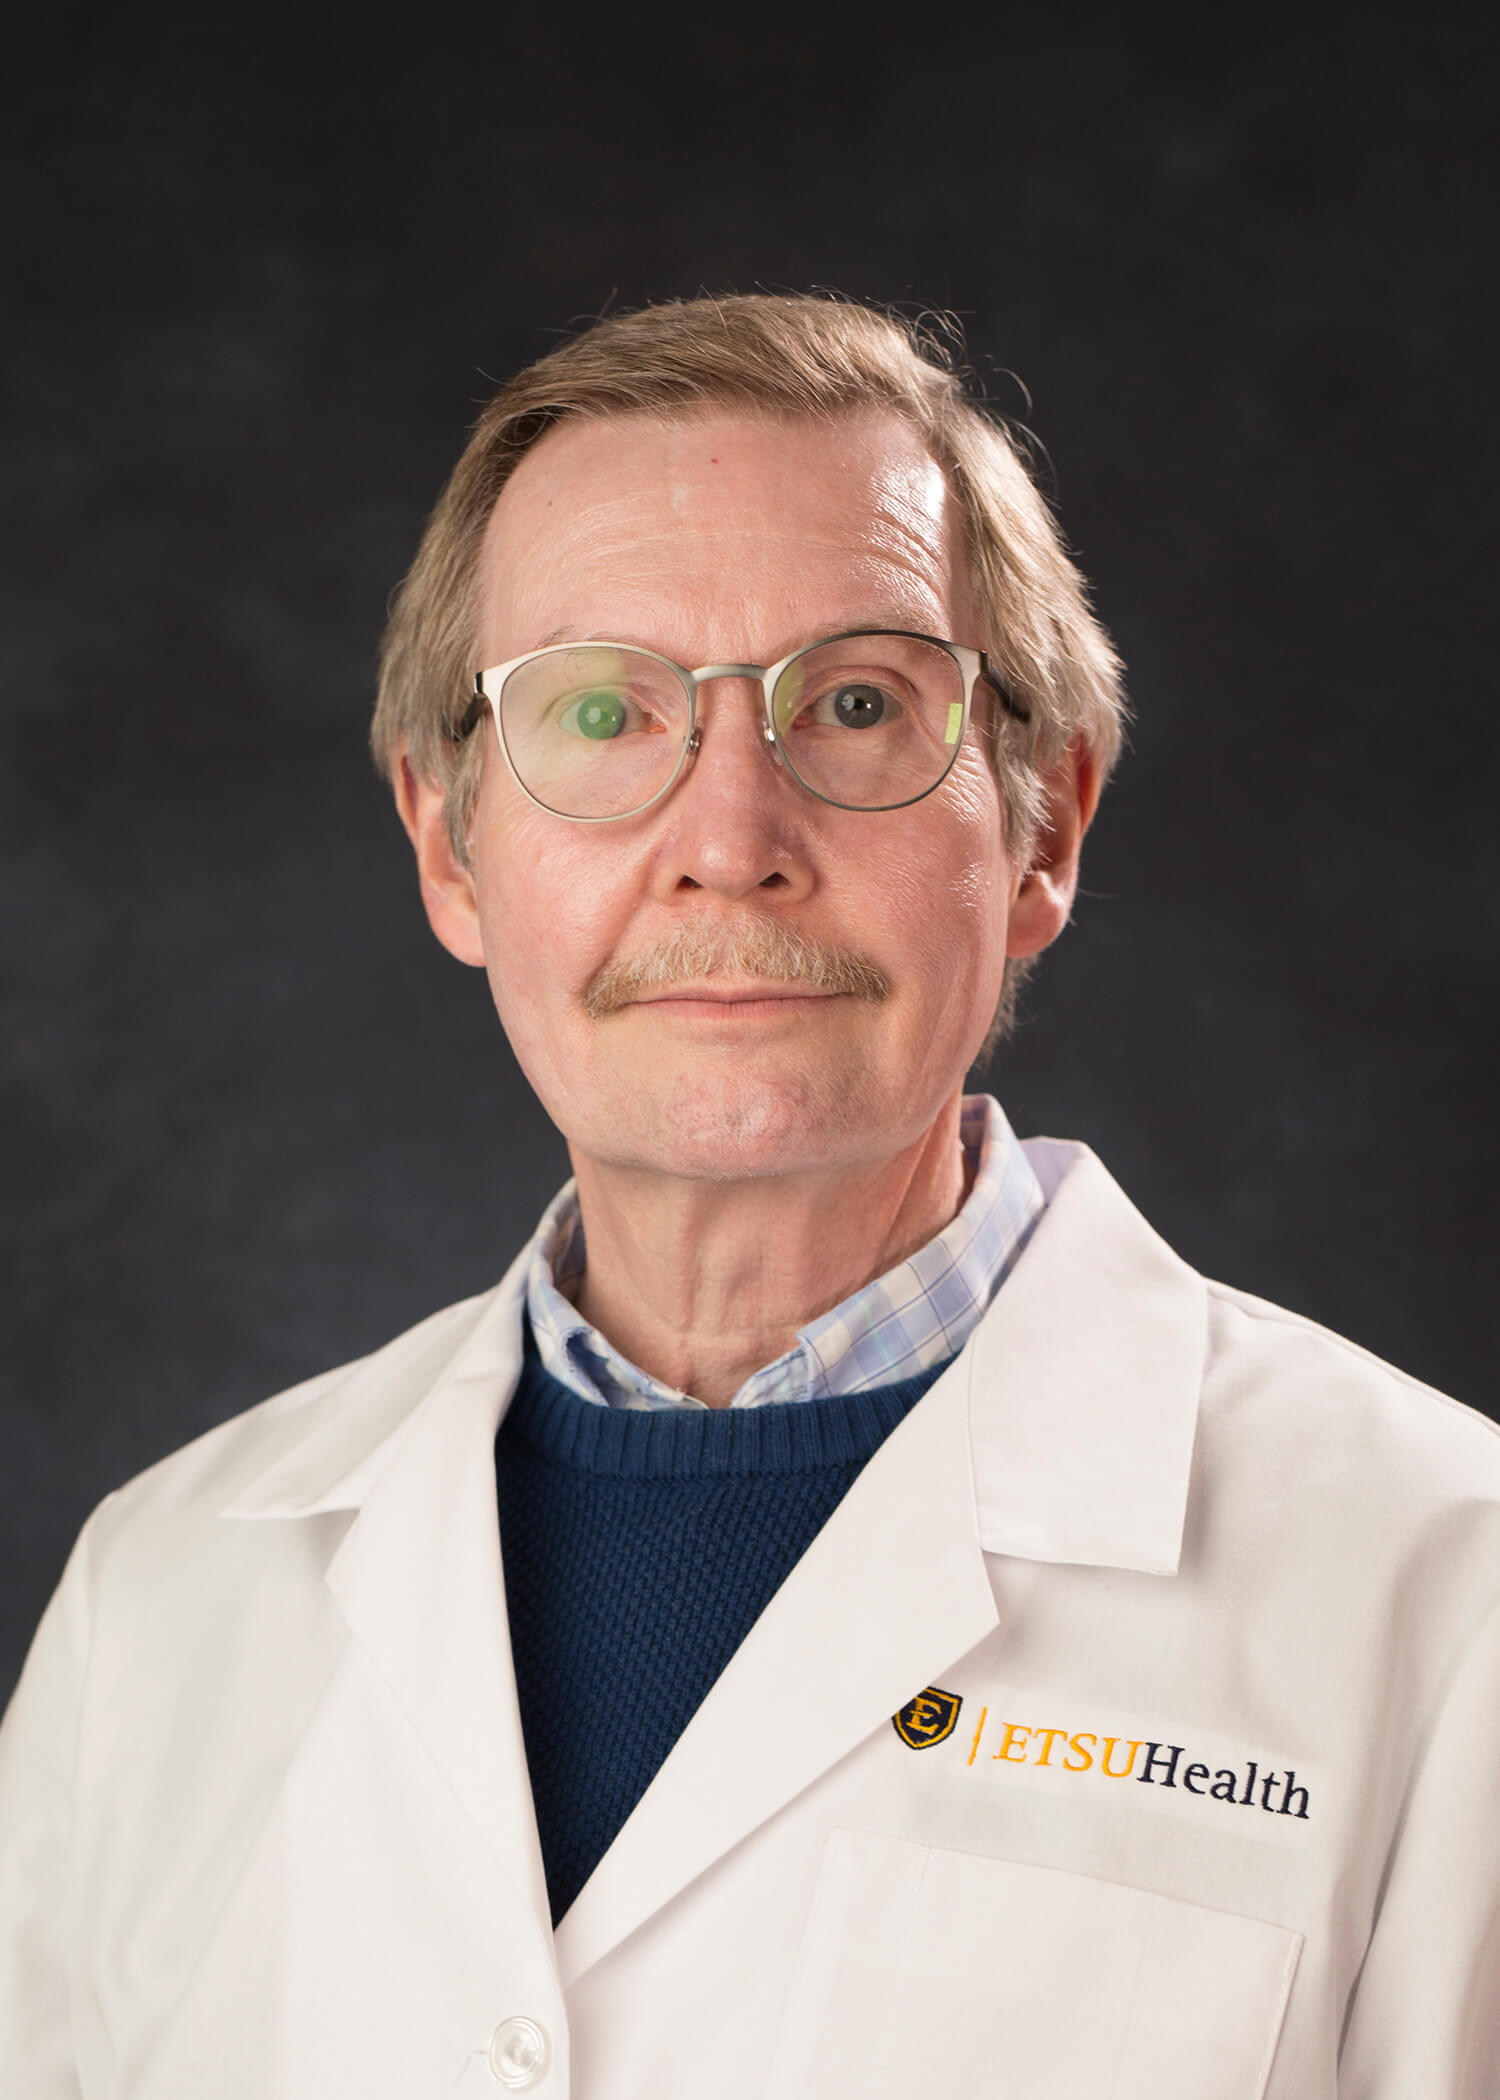 Photo of David Ginn, M.D.